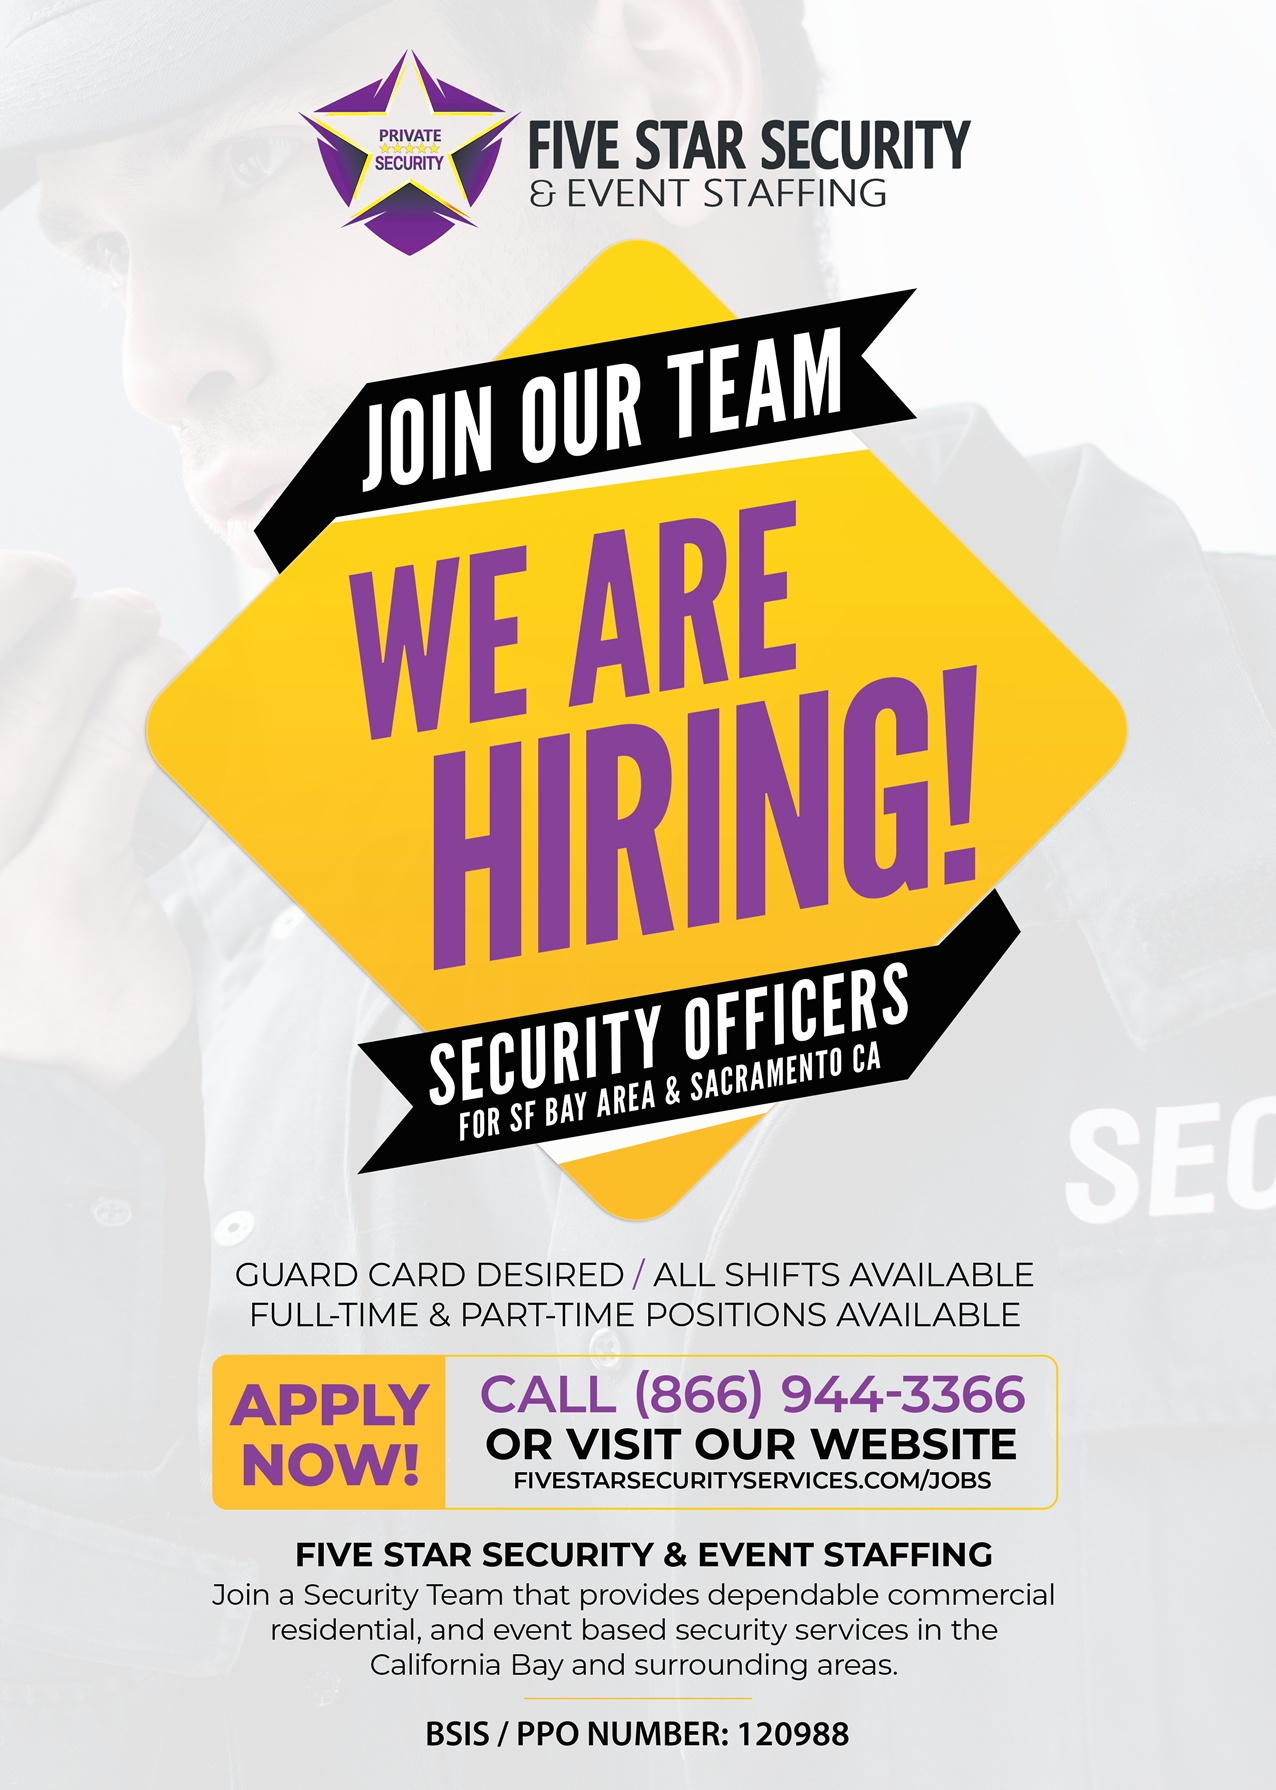 Five Star Security & Event Staffing - Sacramento CA | We Are Hiring Flyer - Security Officers